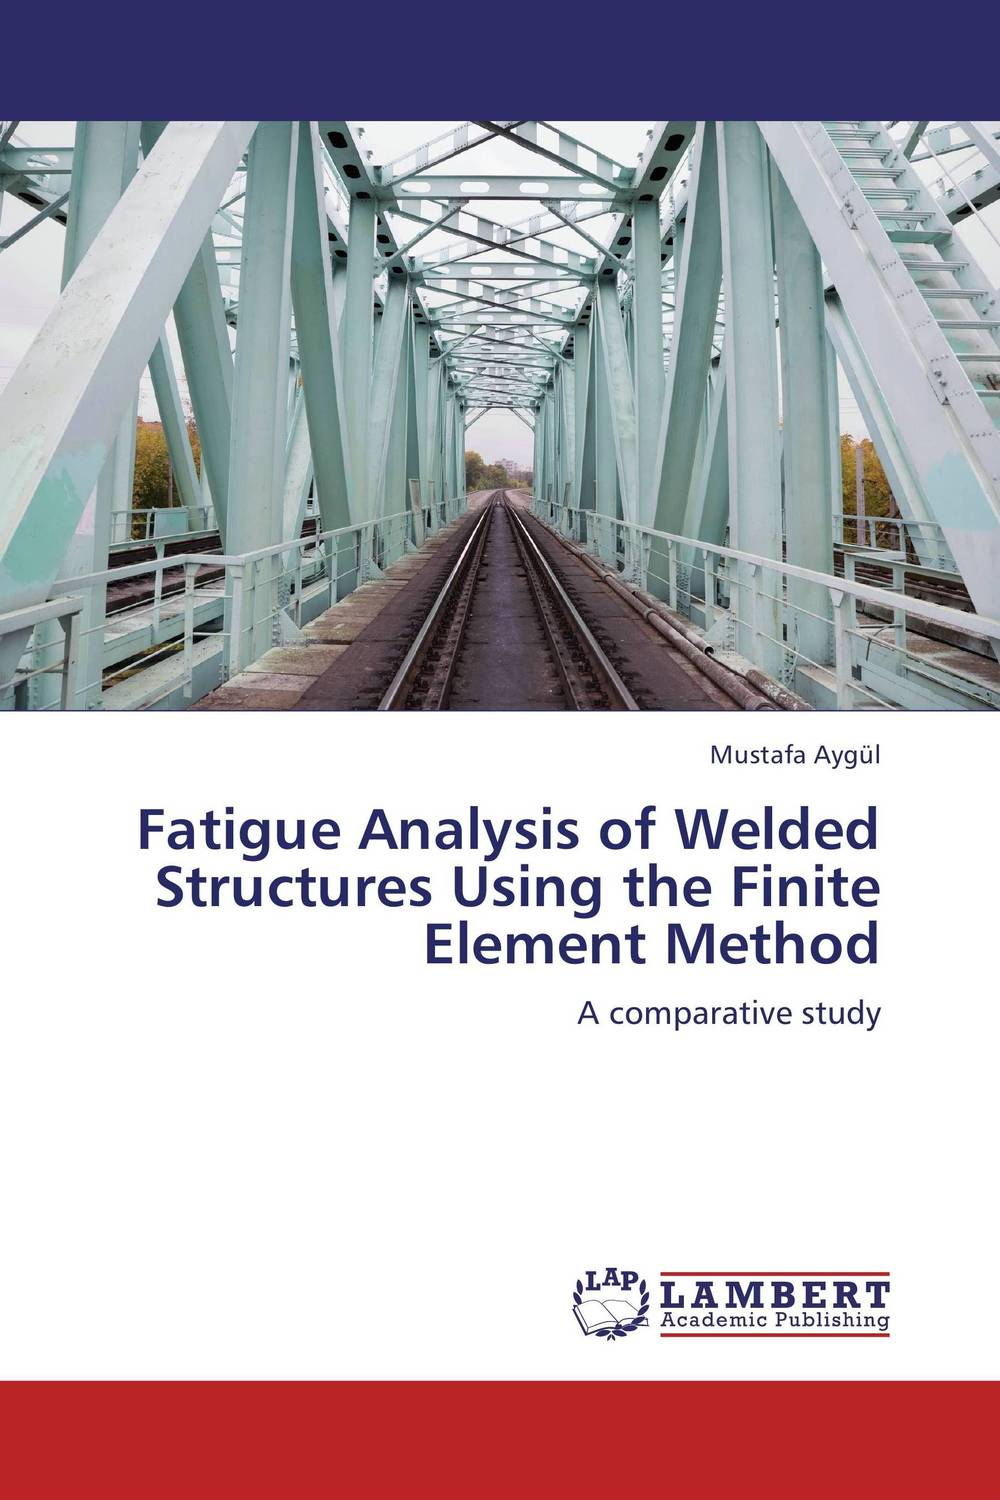 Fatigue Analysis of Welded Structures Using the Finite Element Method dynamic analysis and failure modes of simple structures